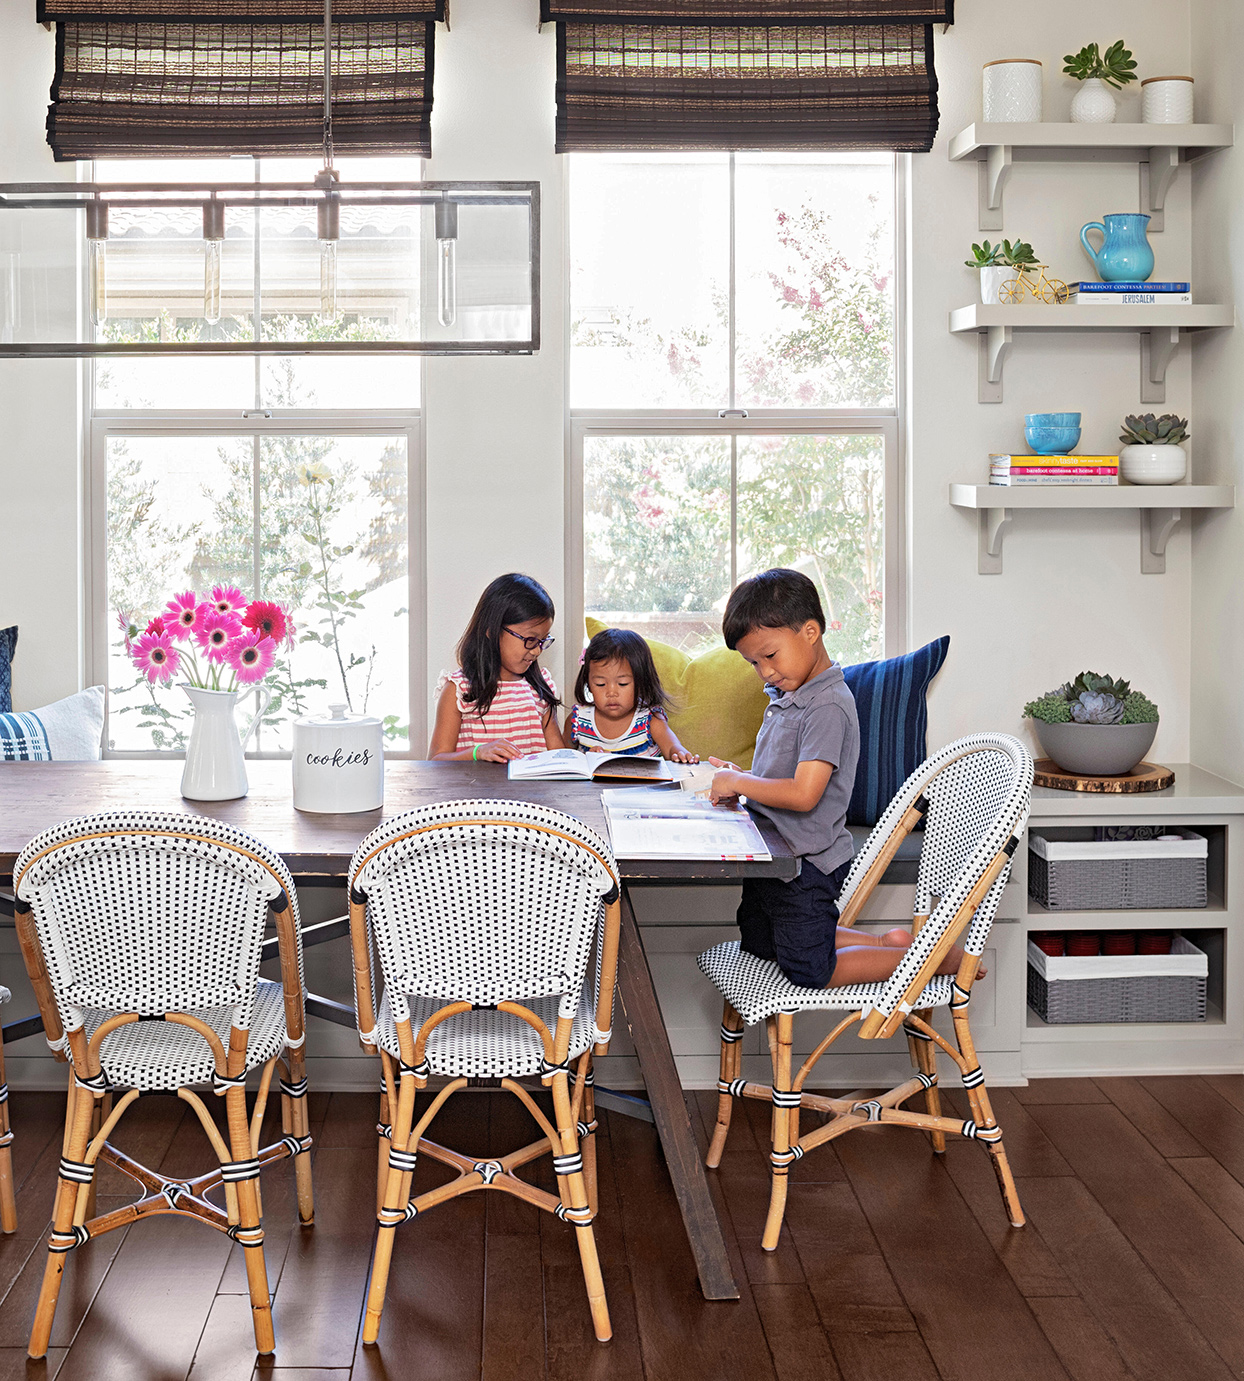 three young children dining table chairs banquette books